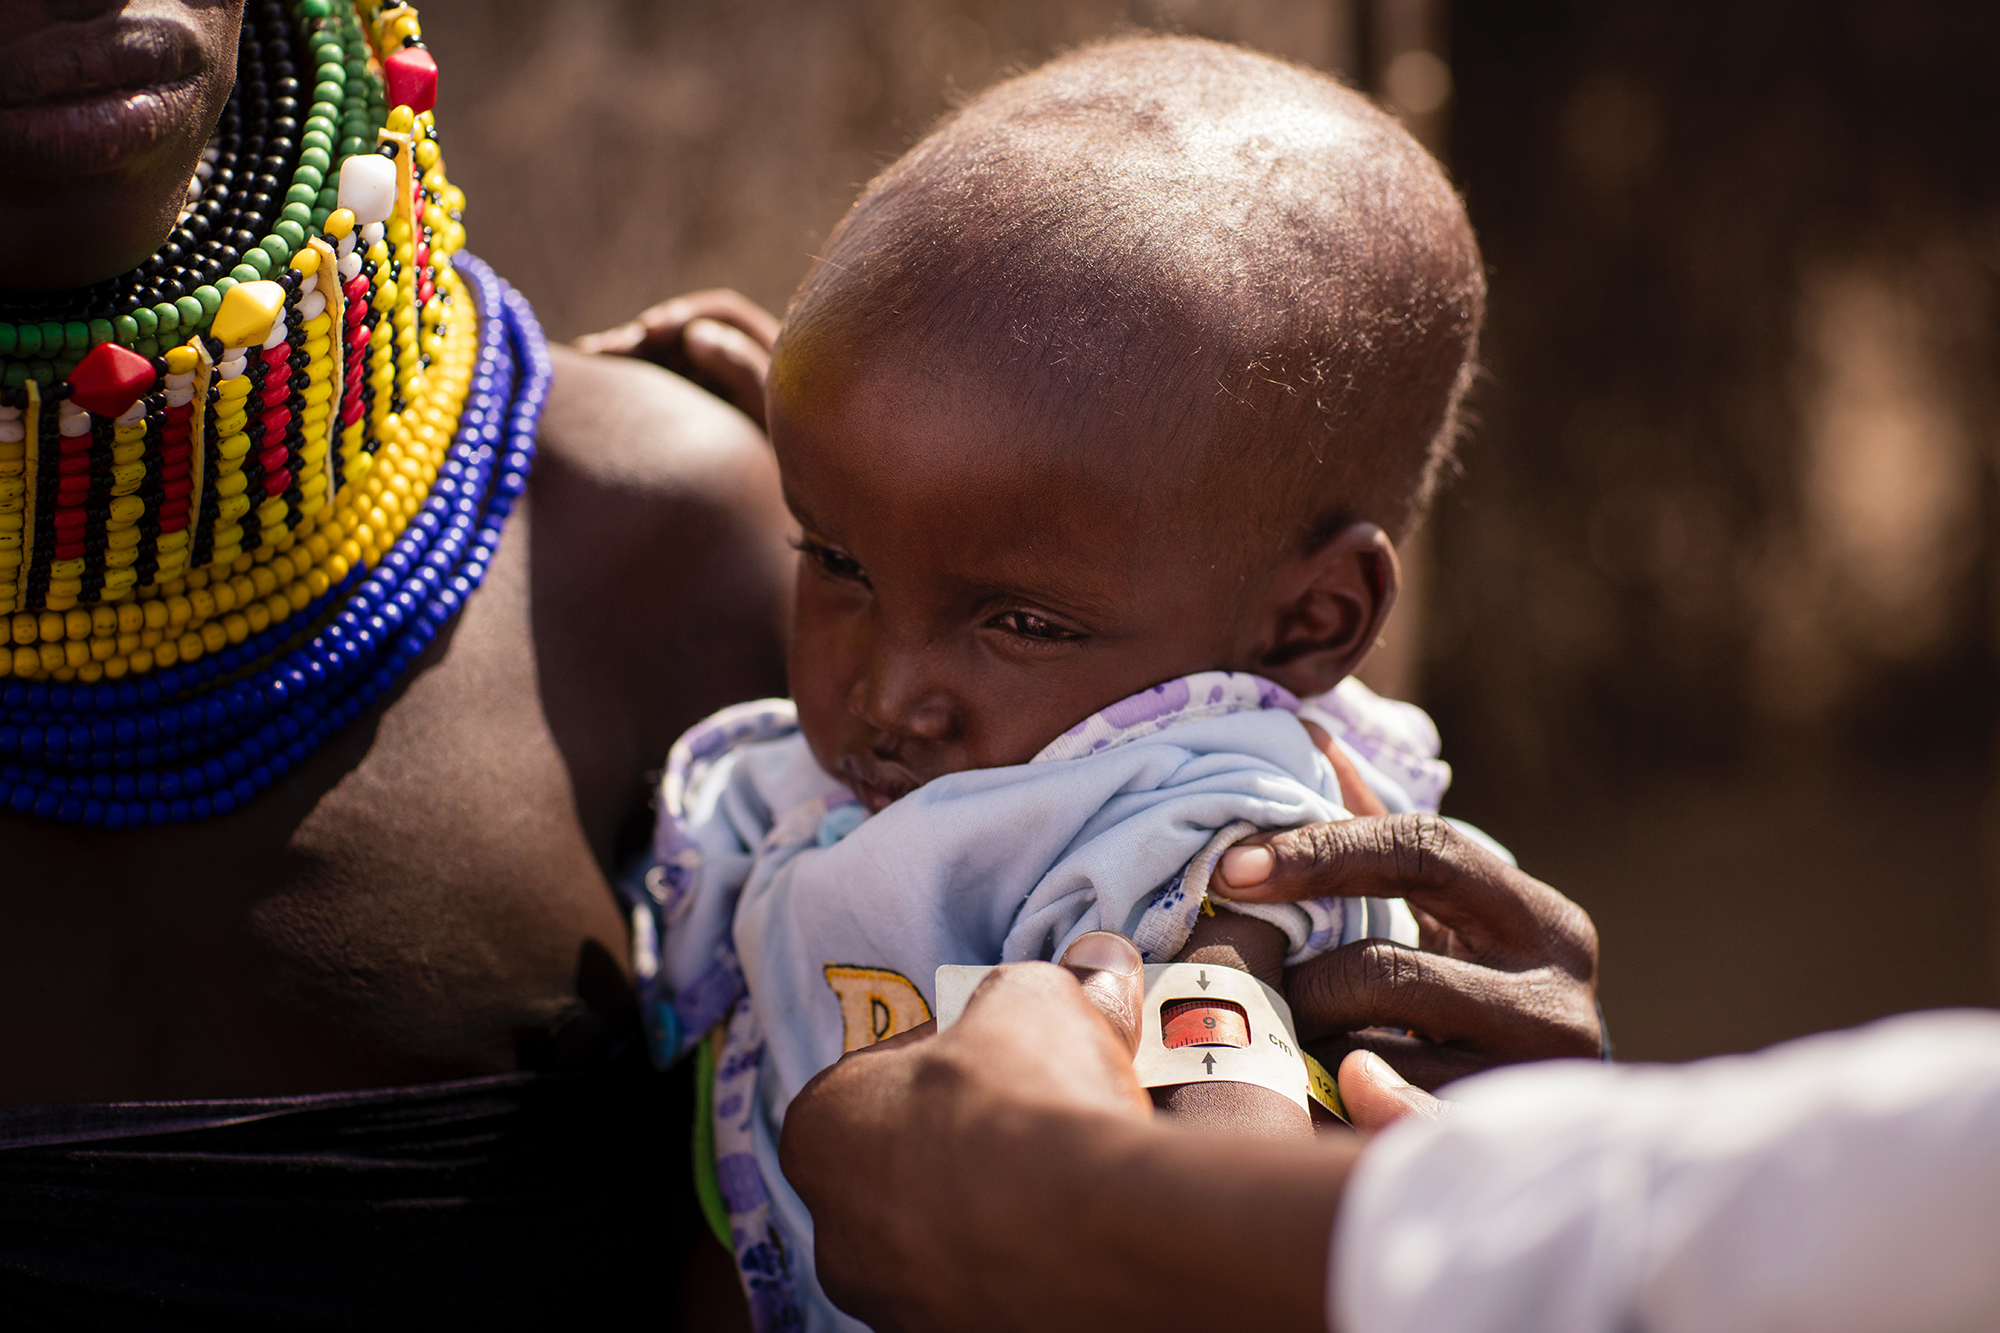 Extremely malnourished two-and-a-half-year-old boy in Natoo Village measures at the size and development of a seven-month old baby.